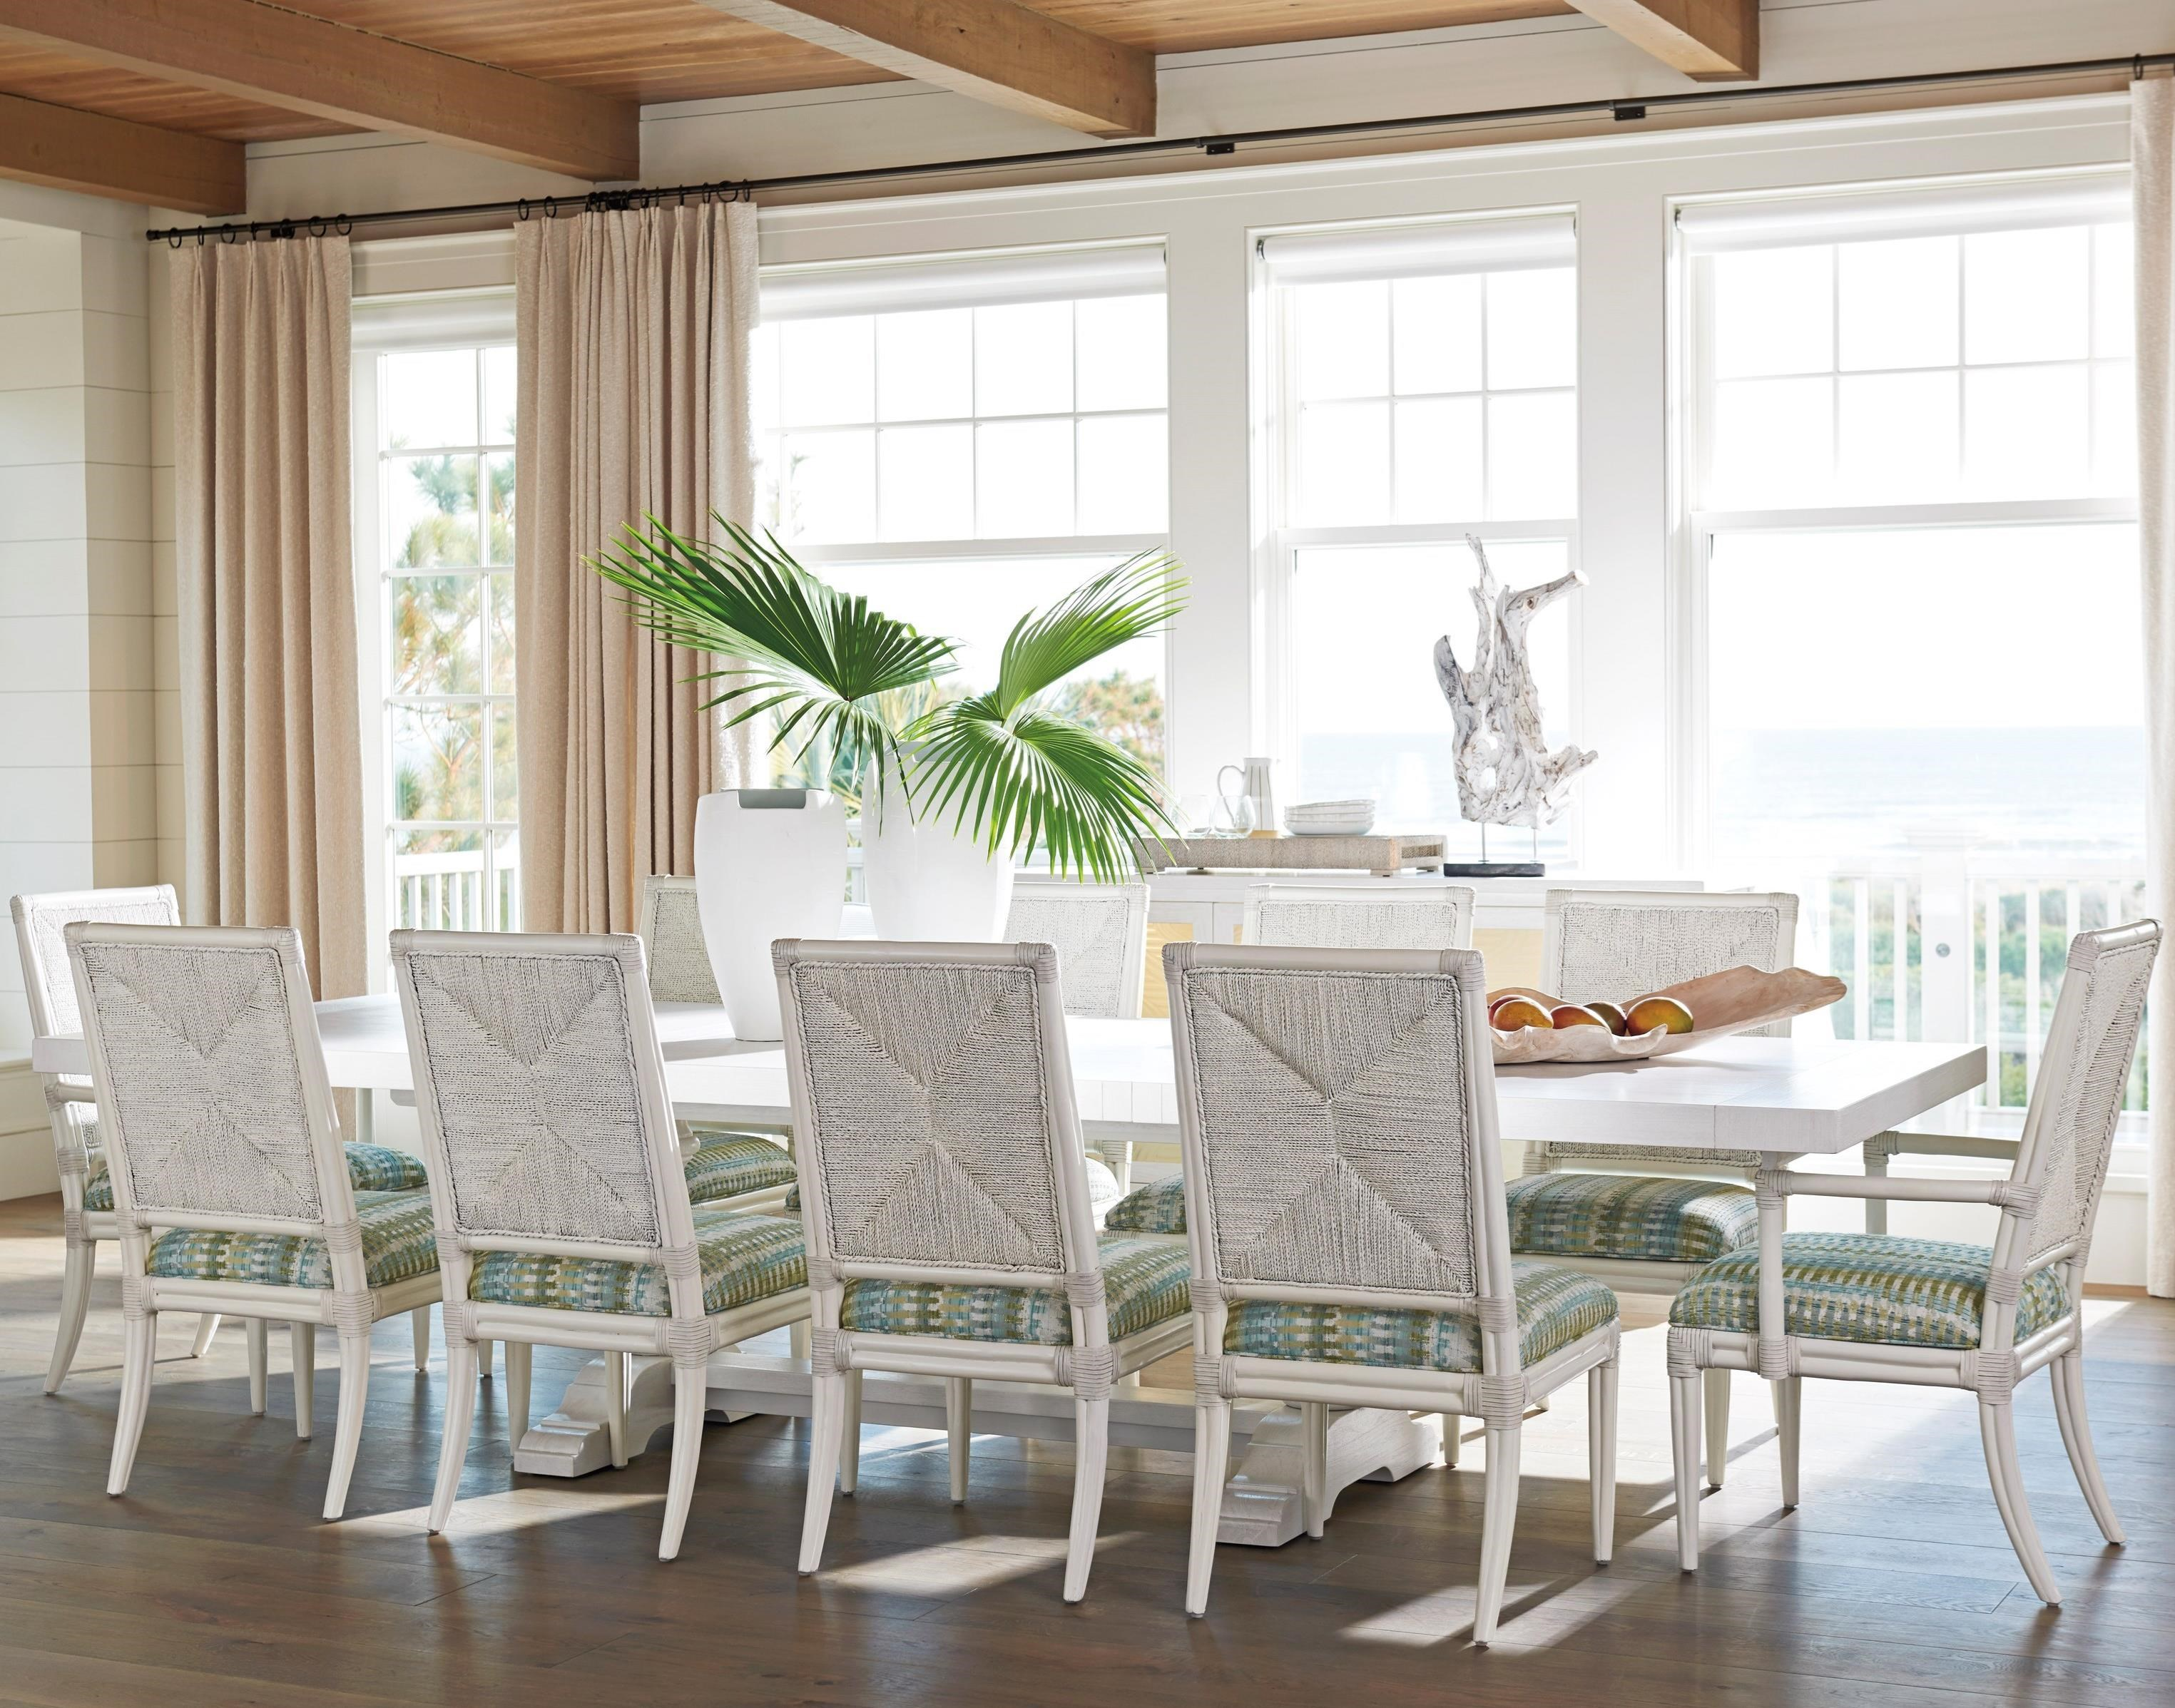 Ocean Breeze 11-Piece Dining Set by Tommy Bahama Home at Baer's Furniture